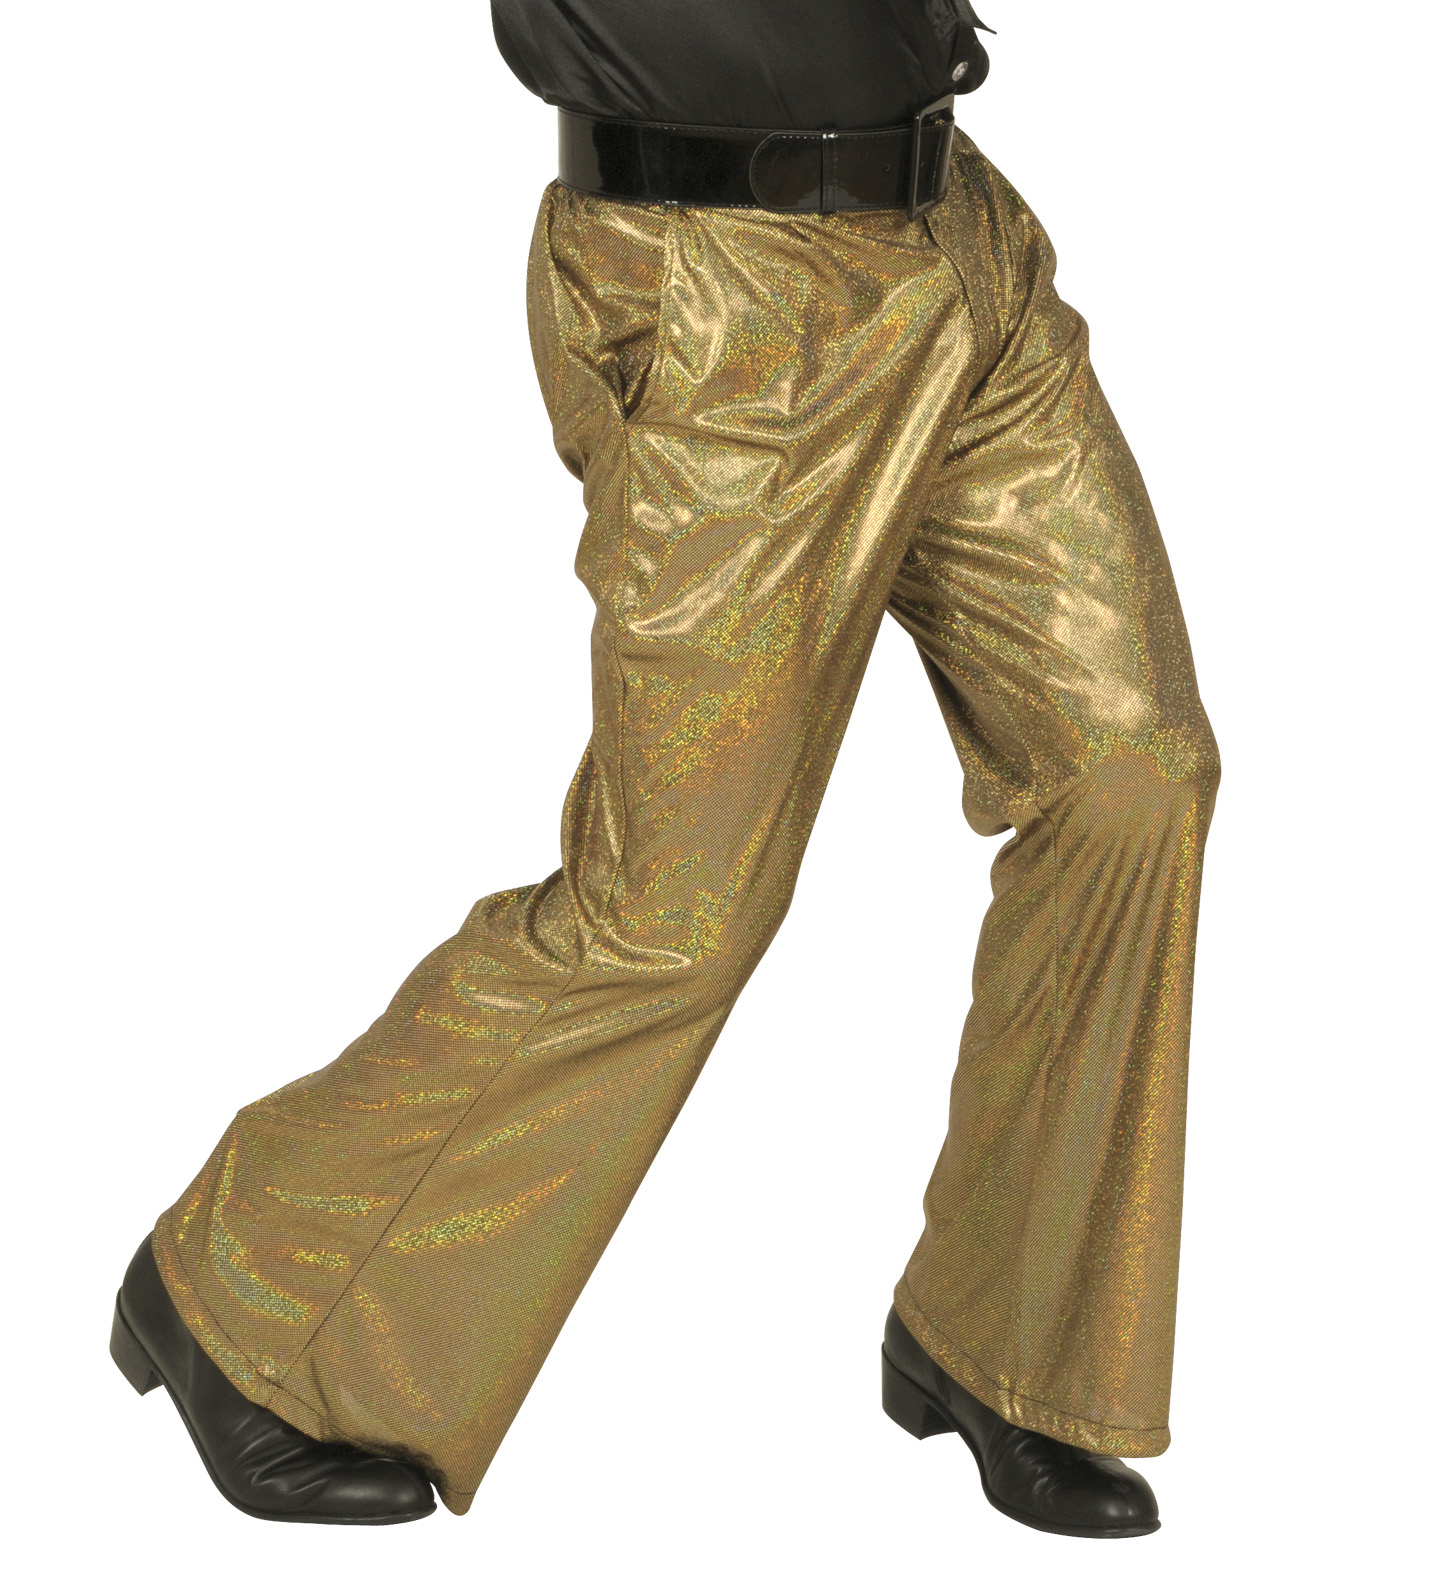 Holographic Sequin Pants - Gold Trouser Pants 70s Fancy Dress